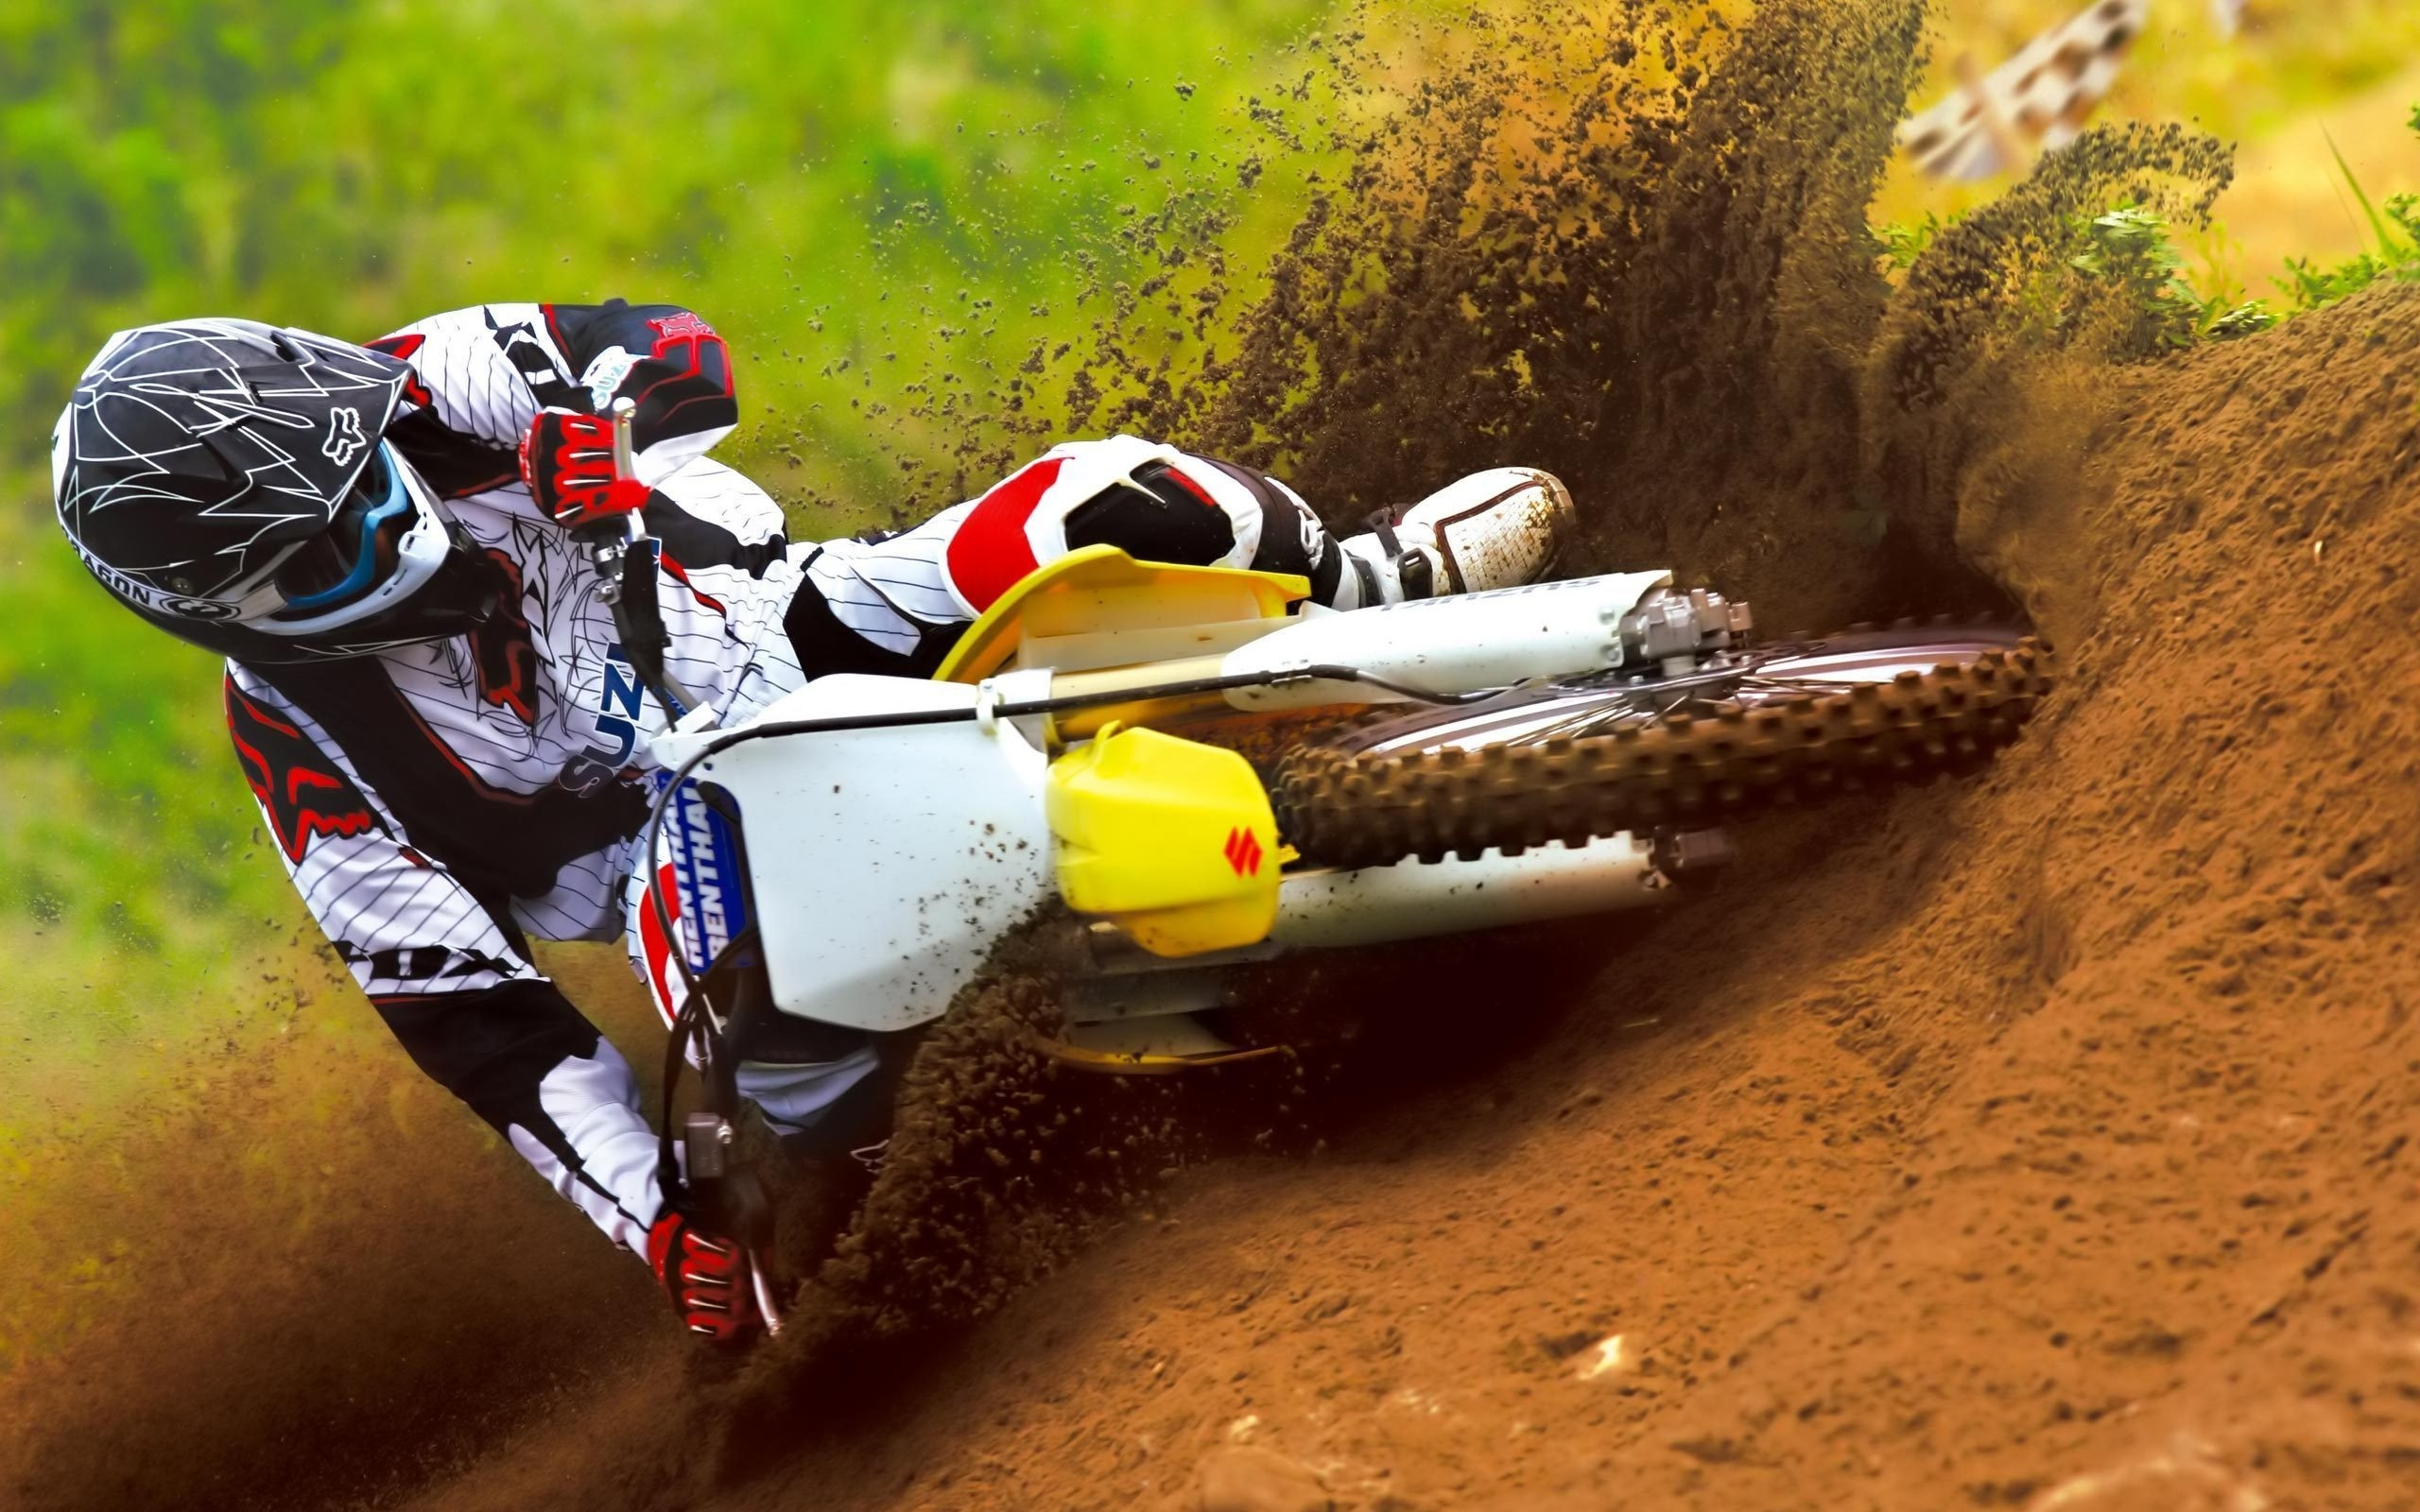 Motocross Dirt Hd Wallpaper